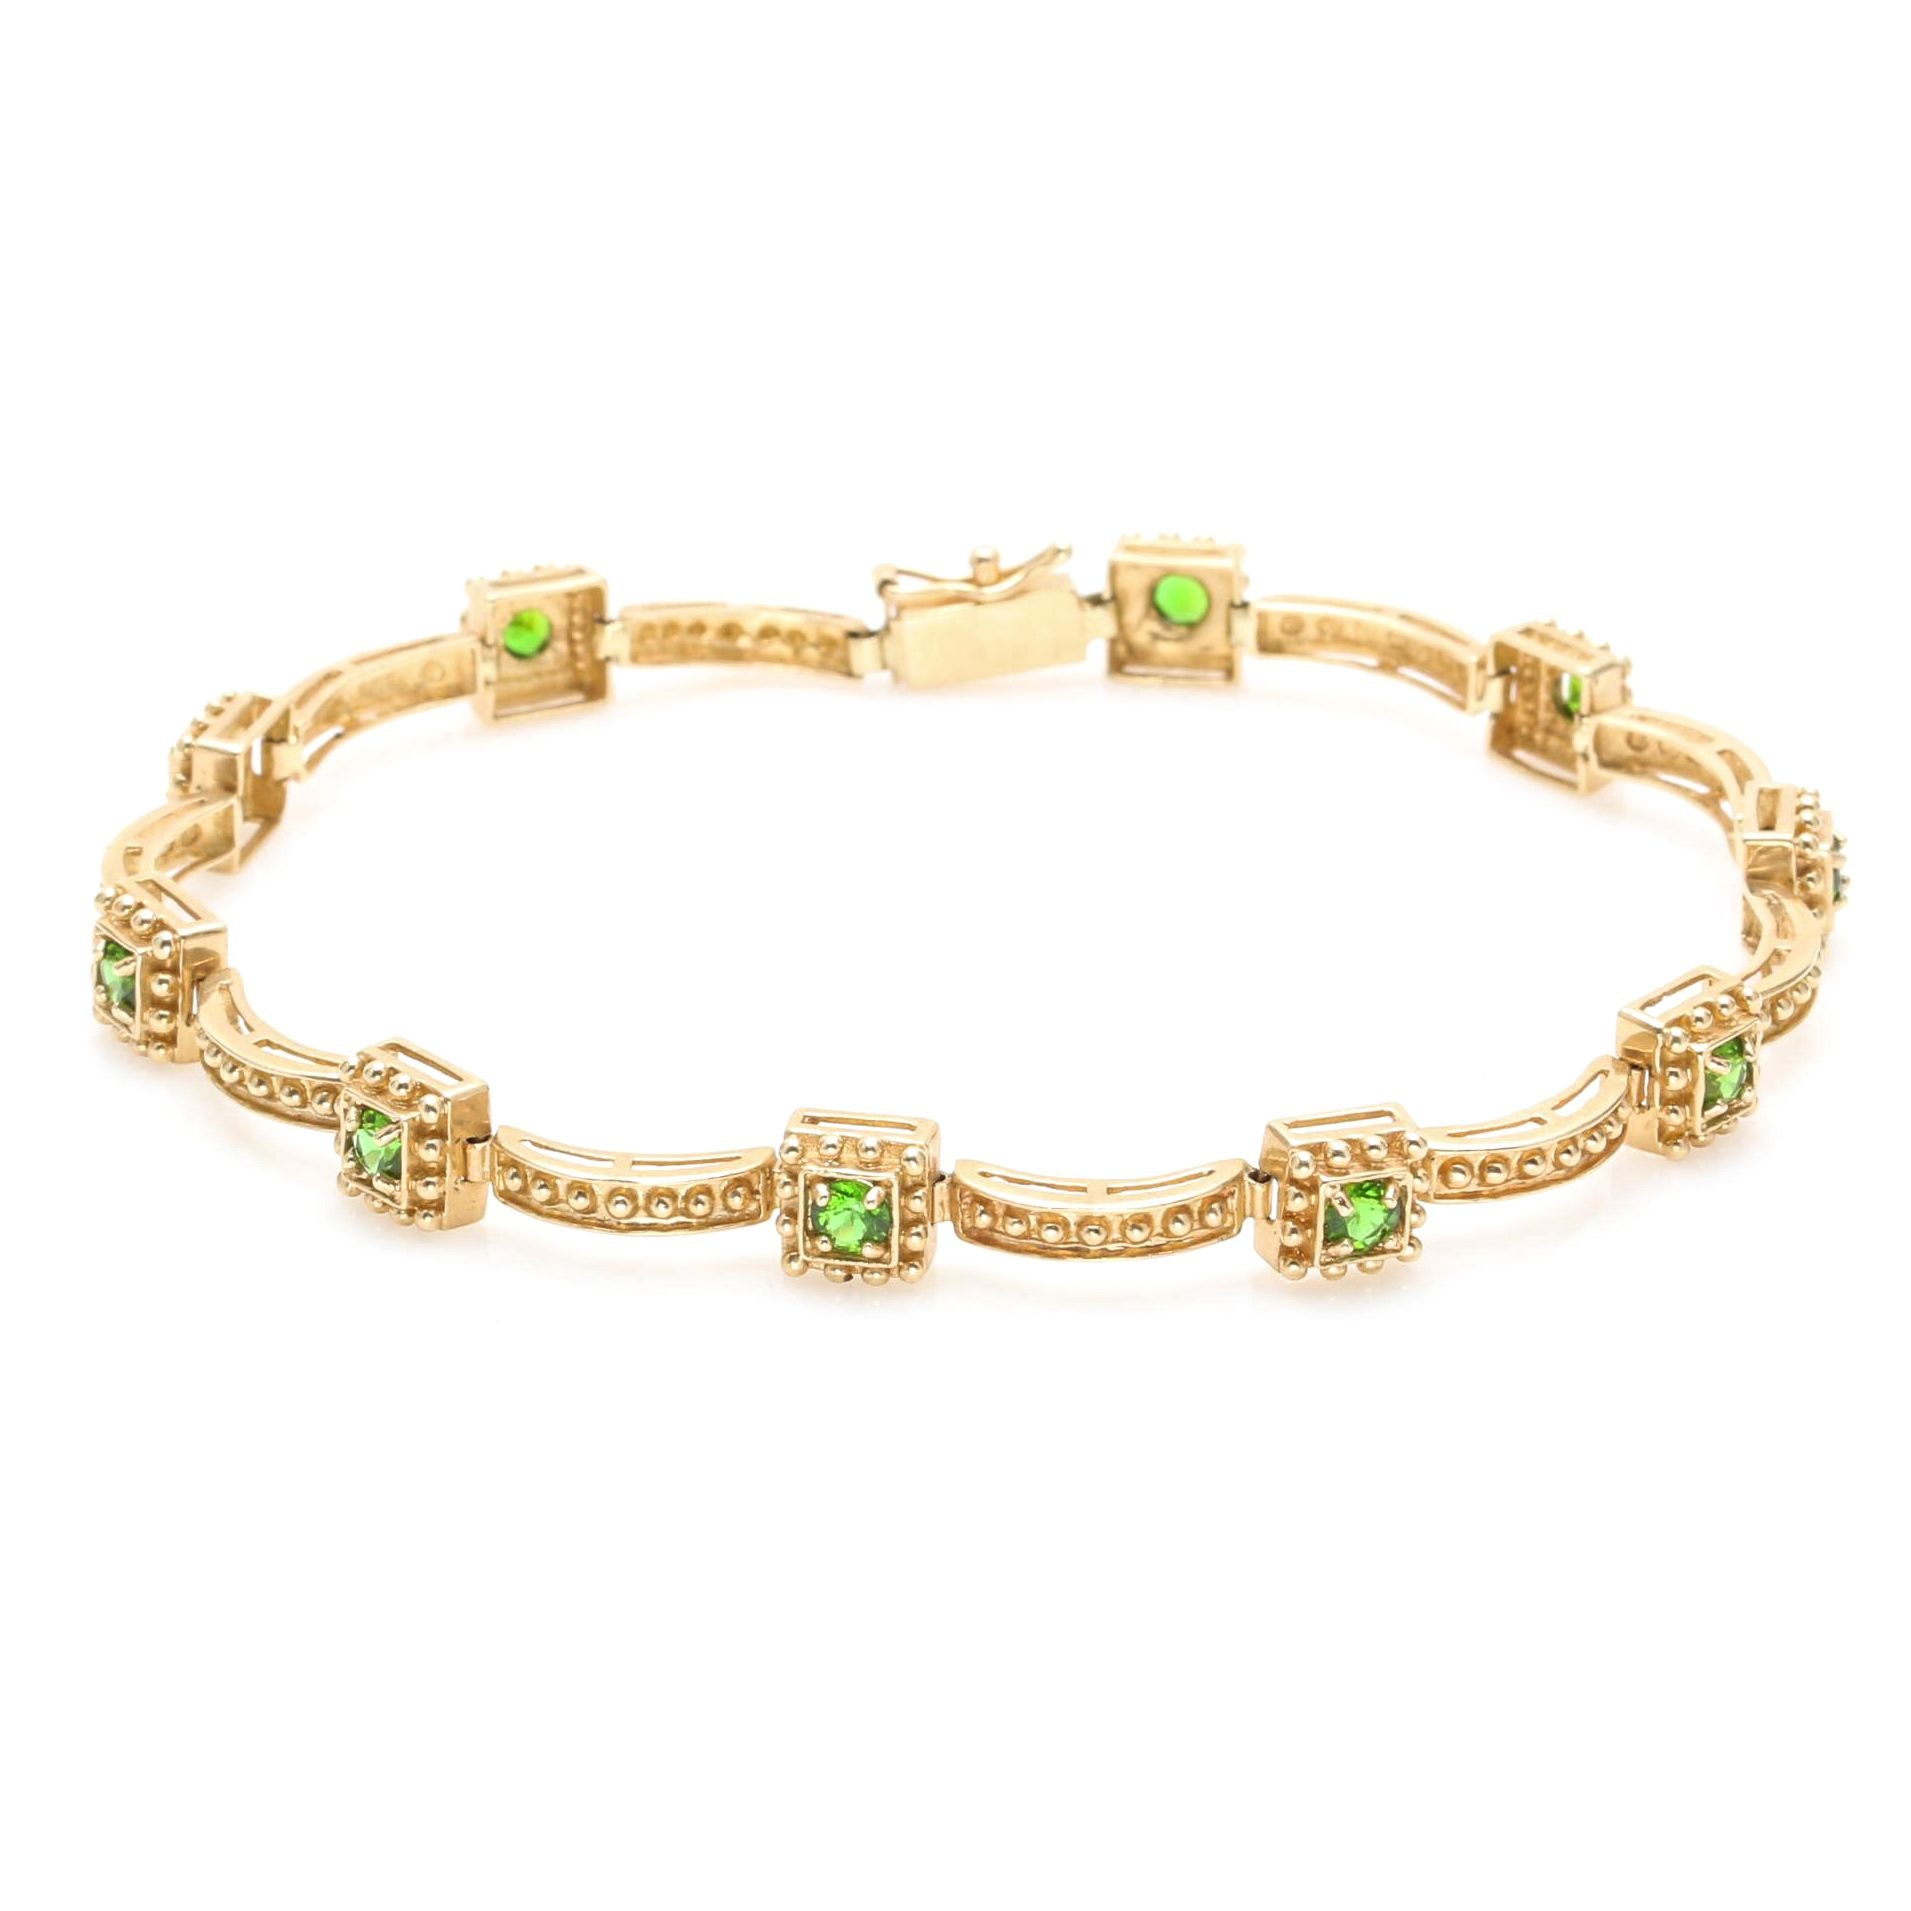 14K Yellow Gold Chrome Diopside Bracelet